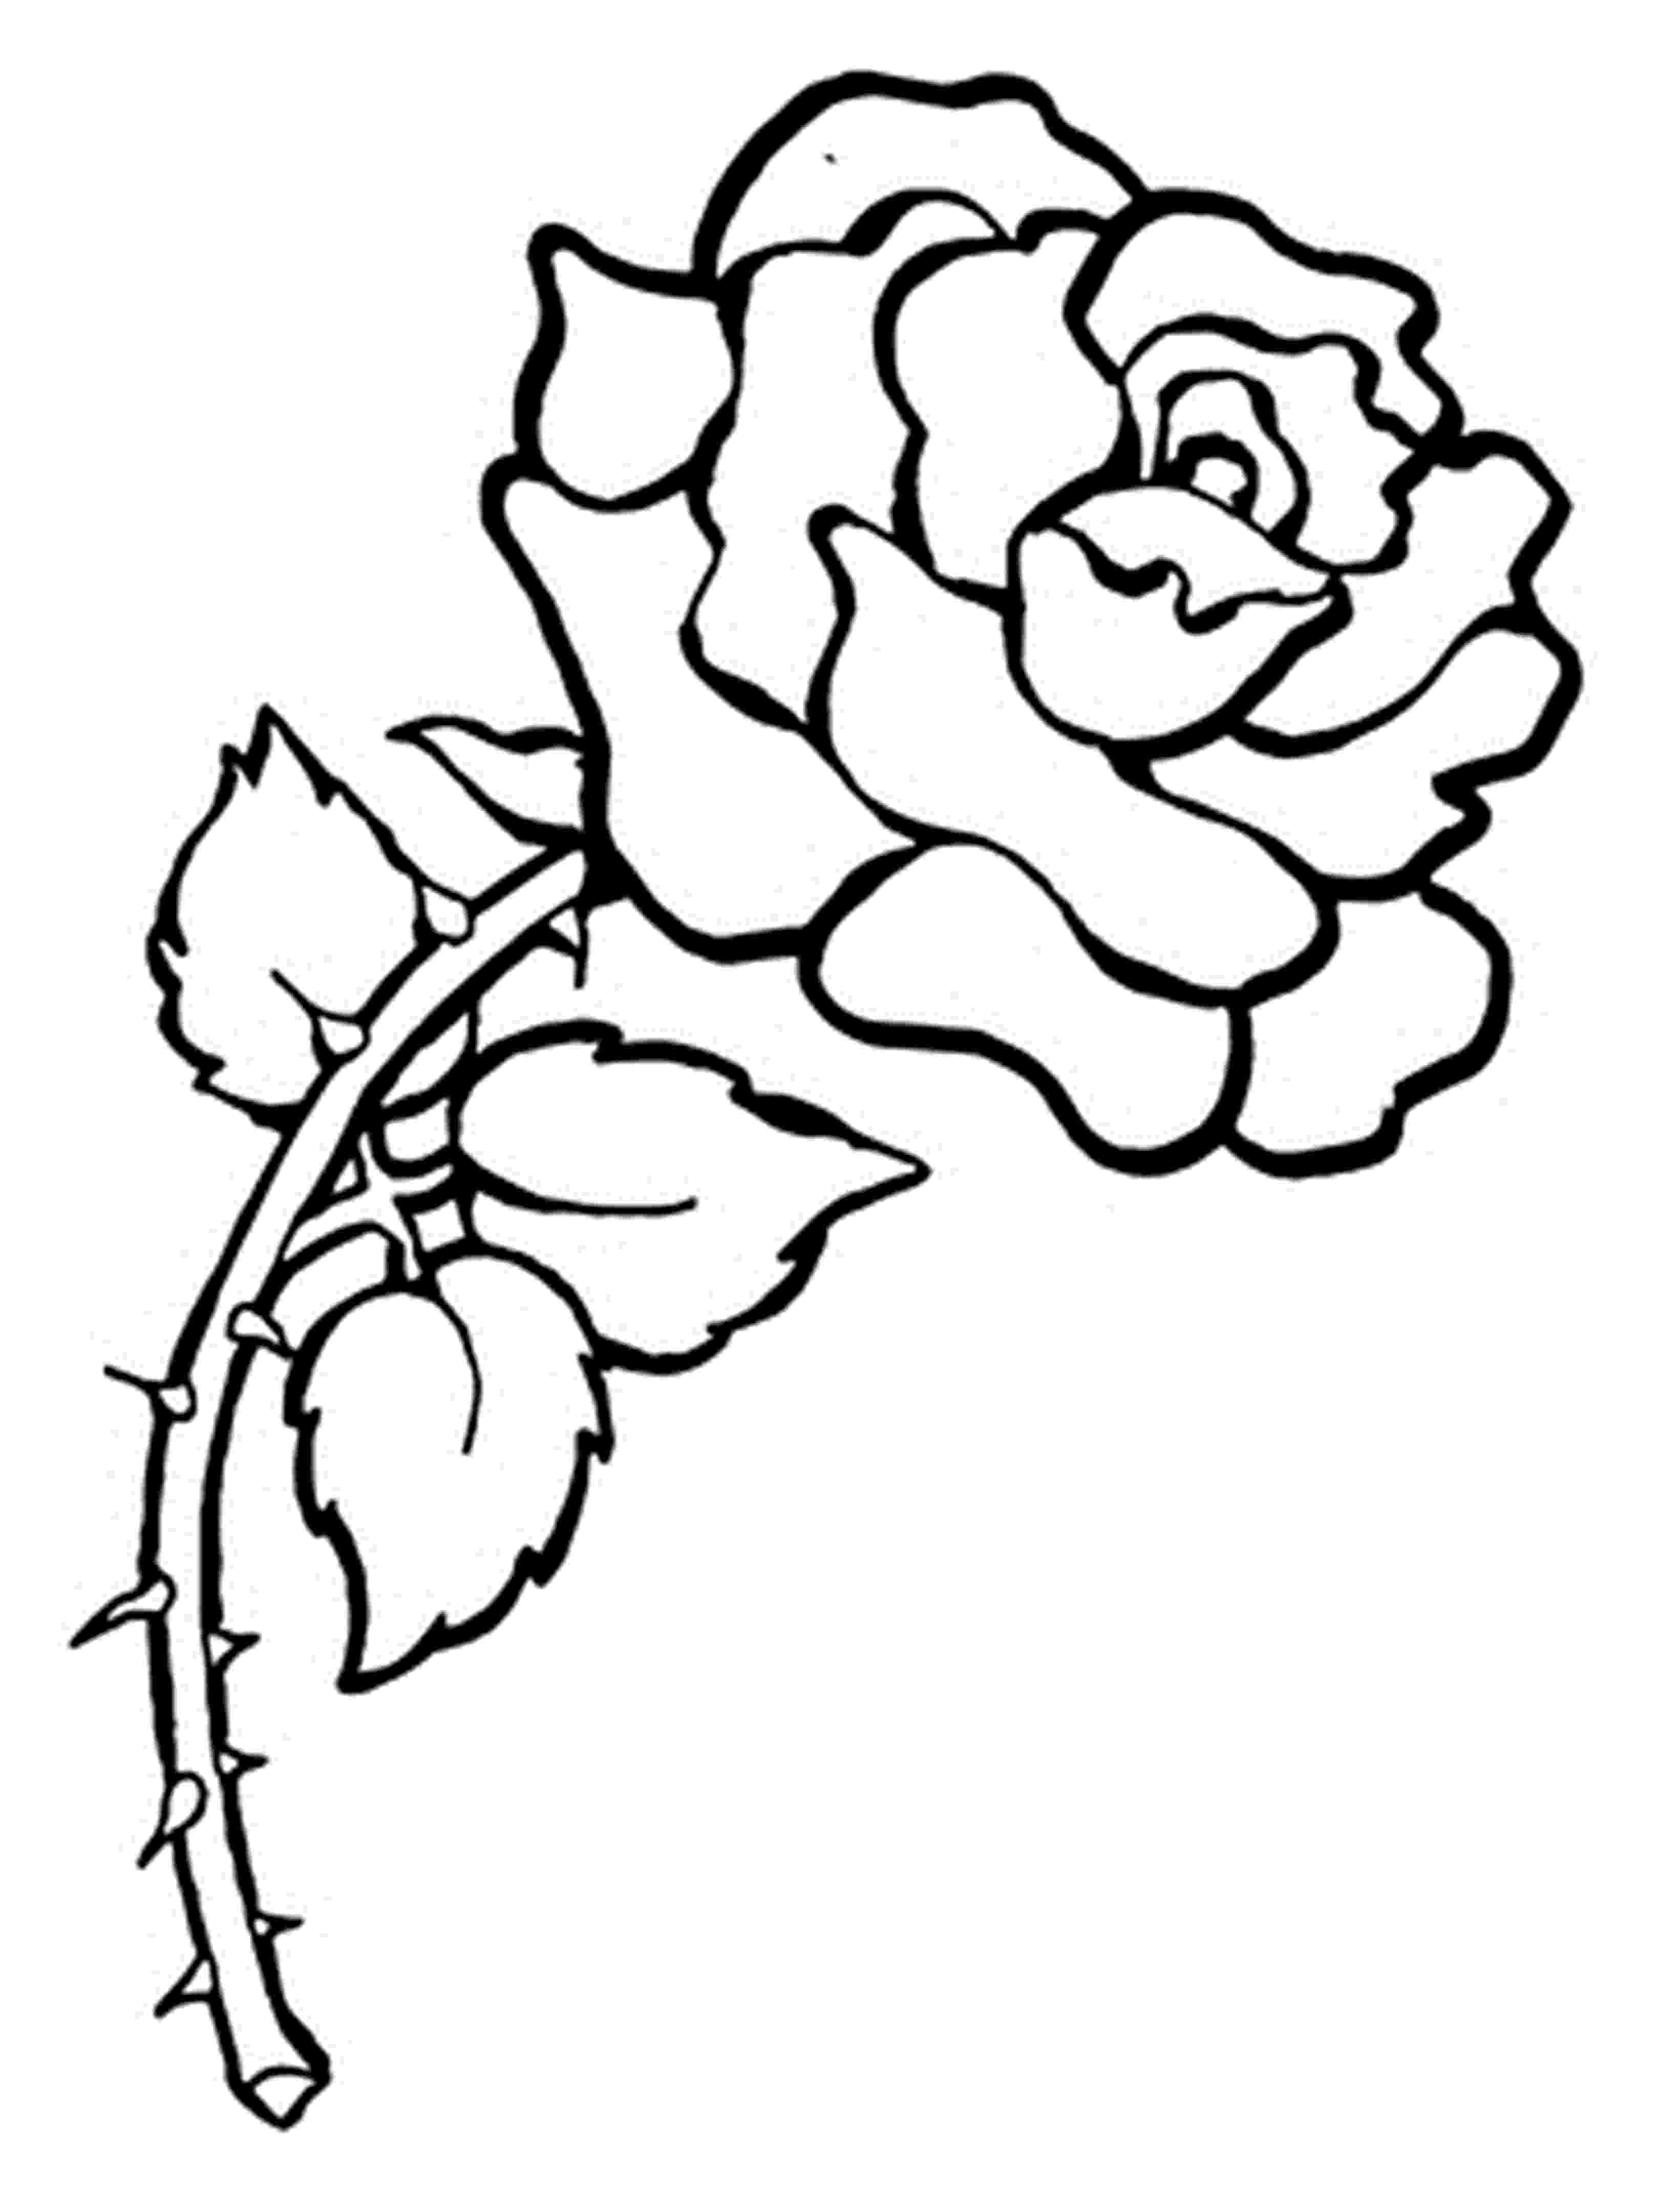 flower colouring pages to print free printable flower coloring pages for kids best colouring print flower pages to